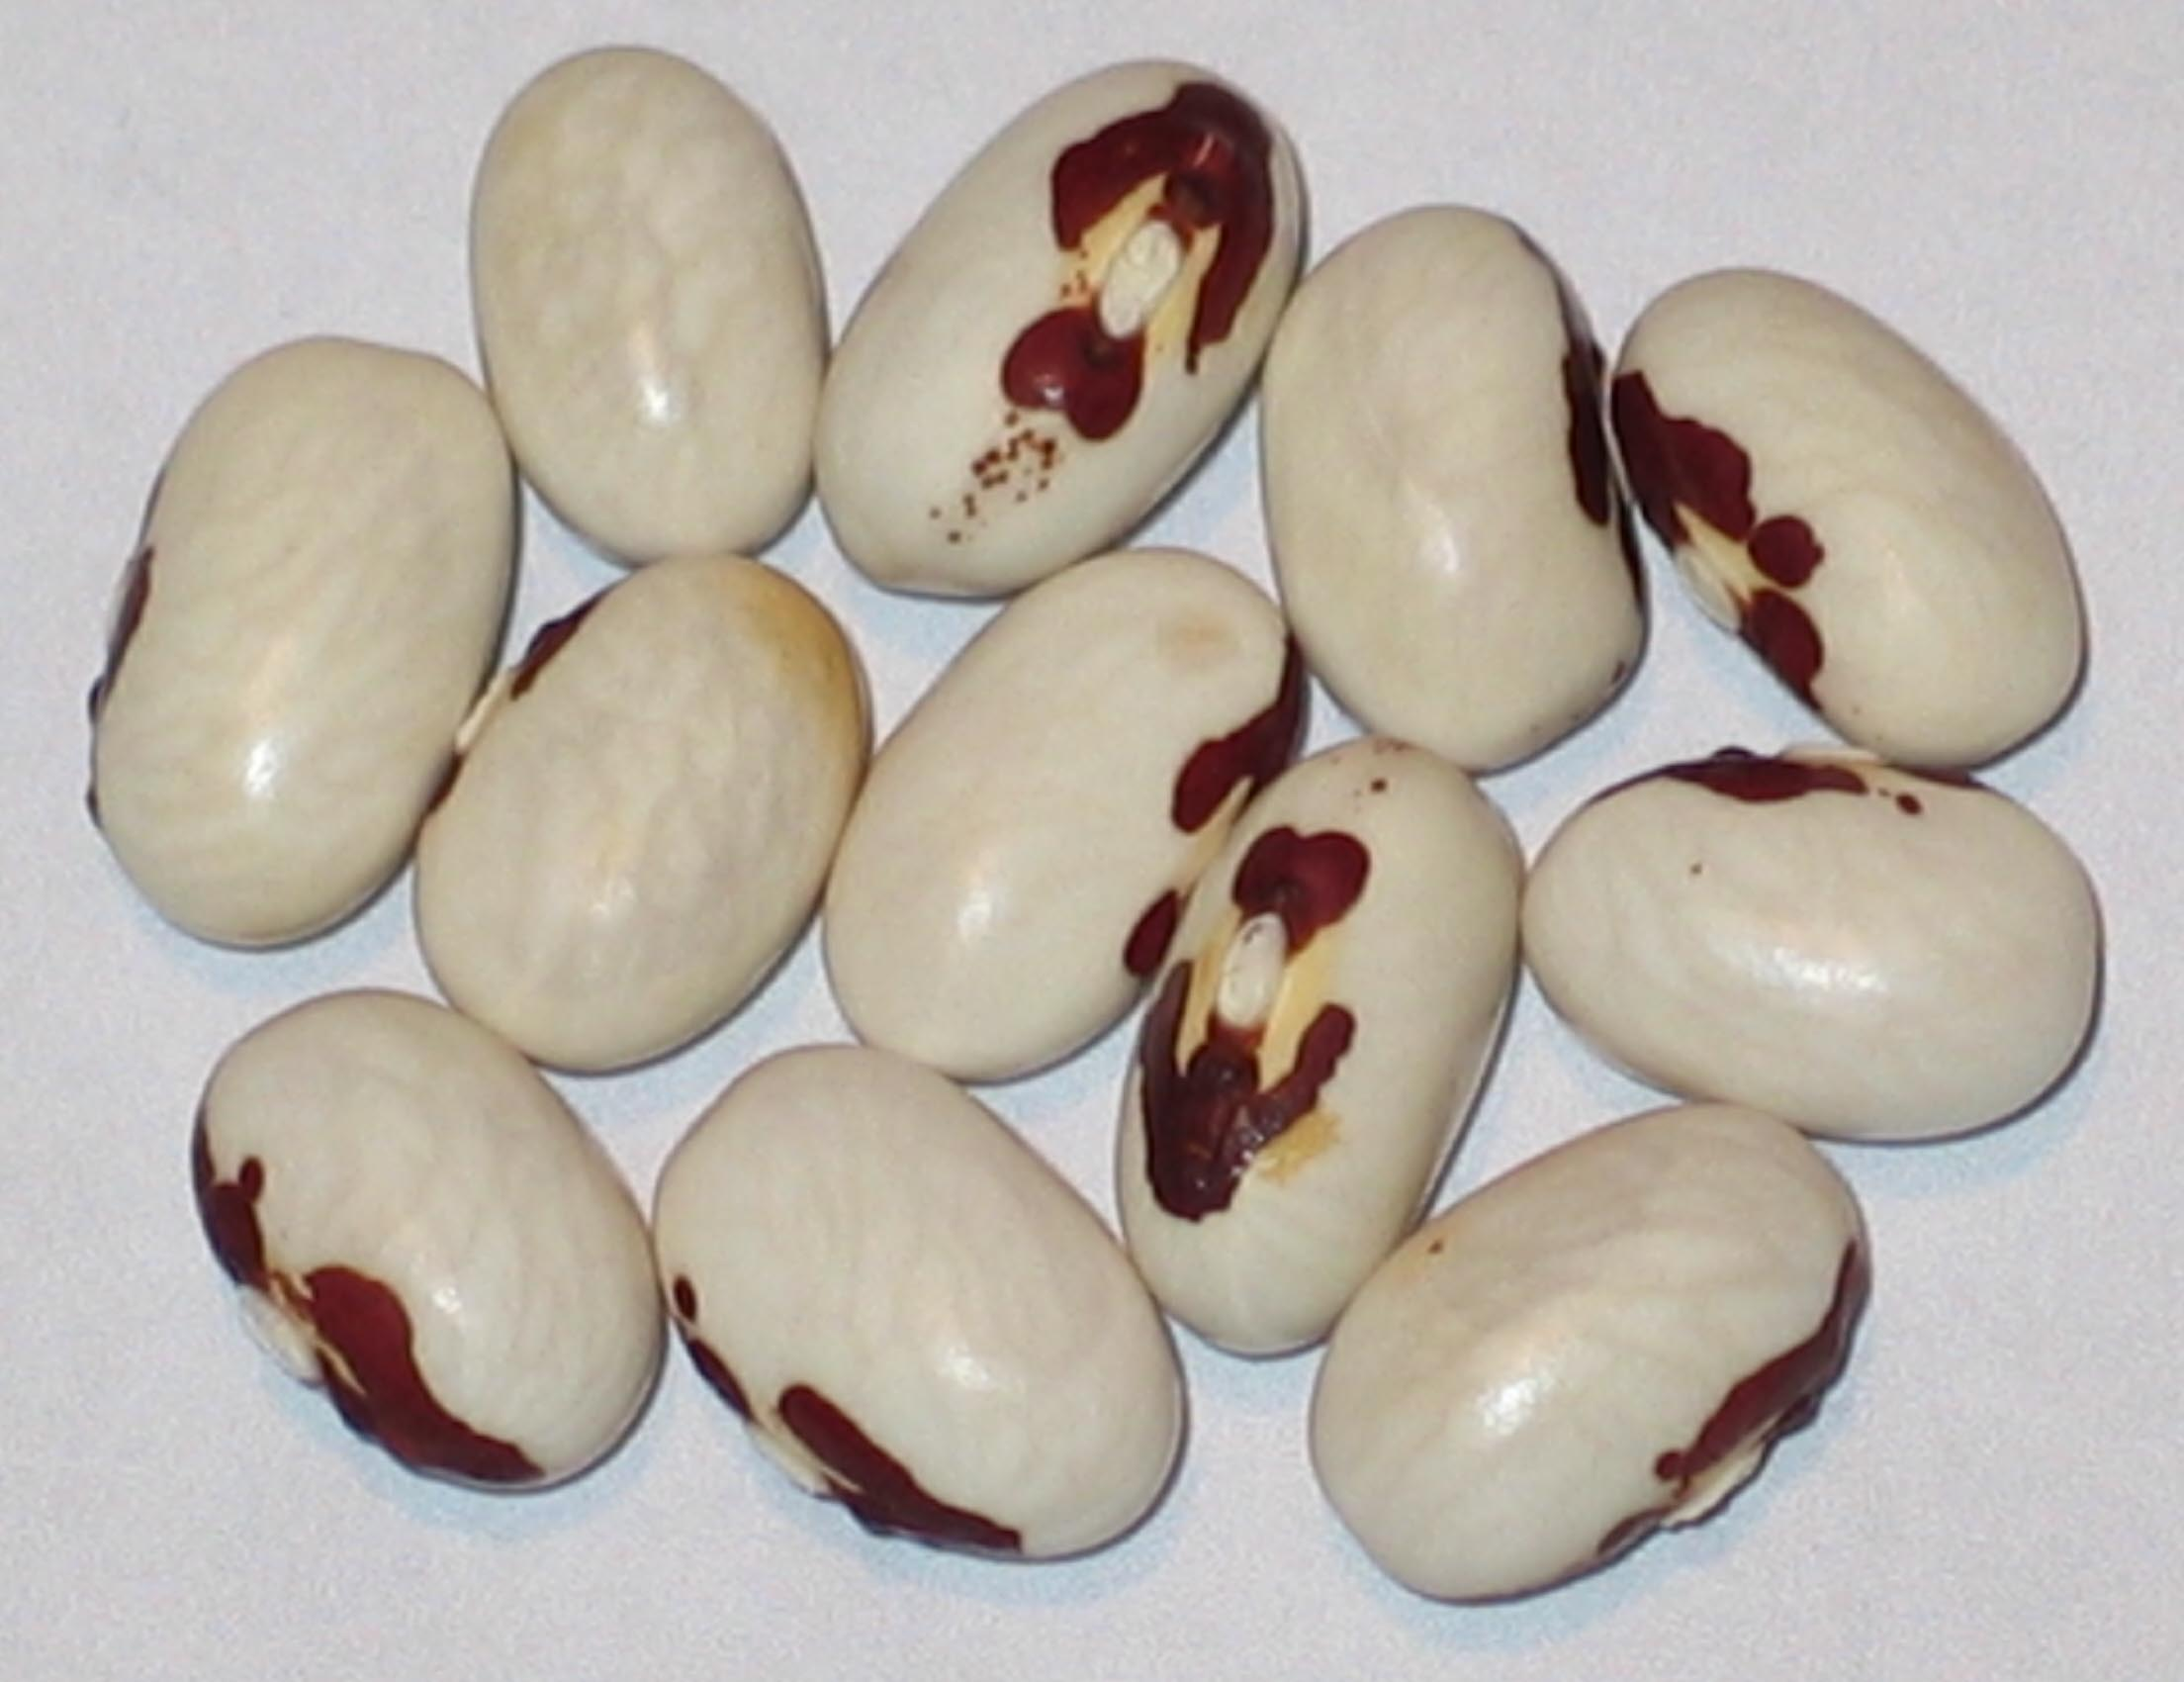 image of Tenderpod beans